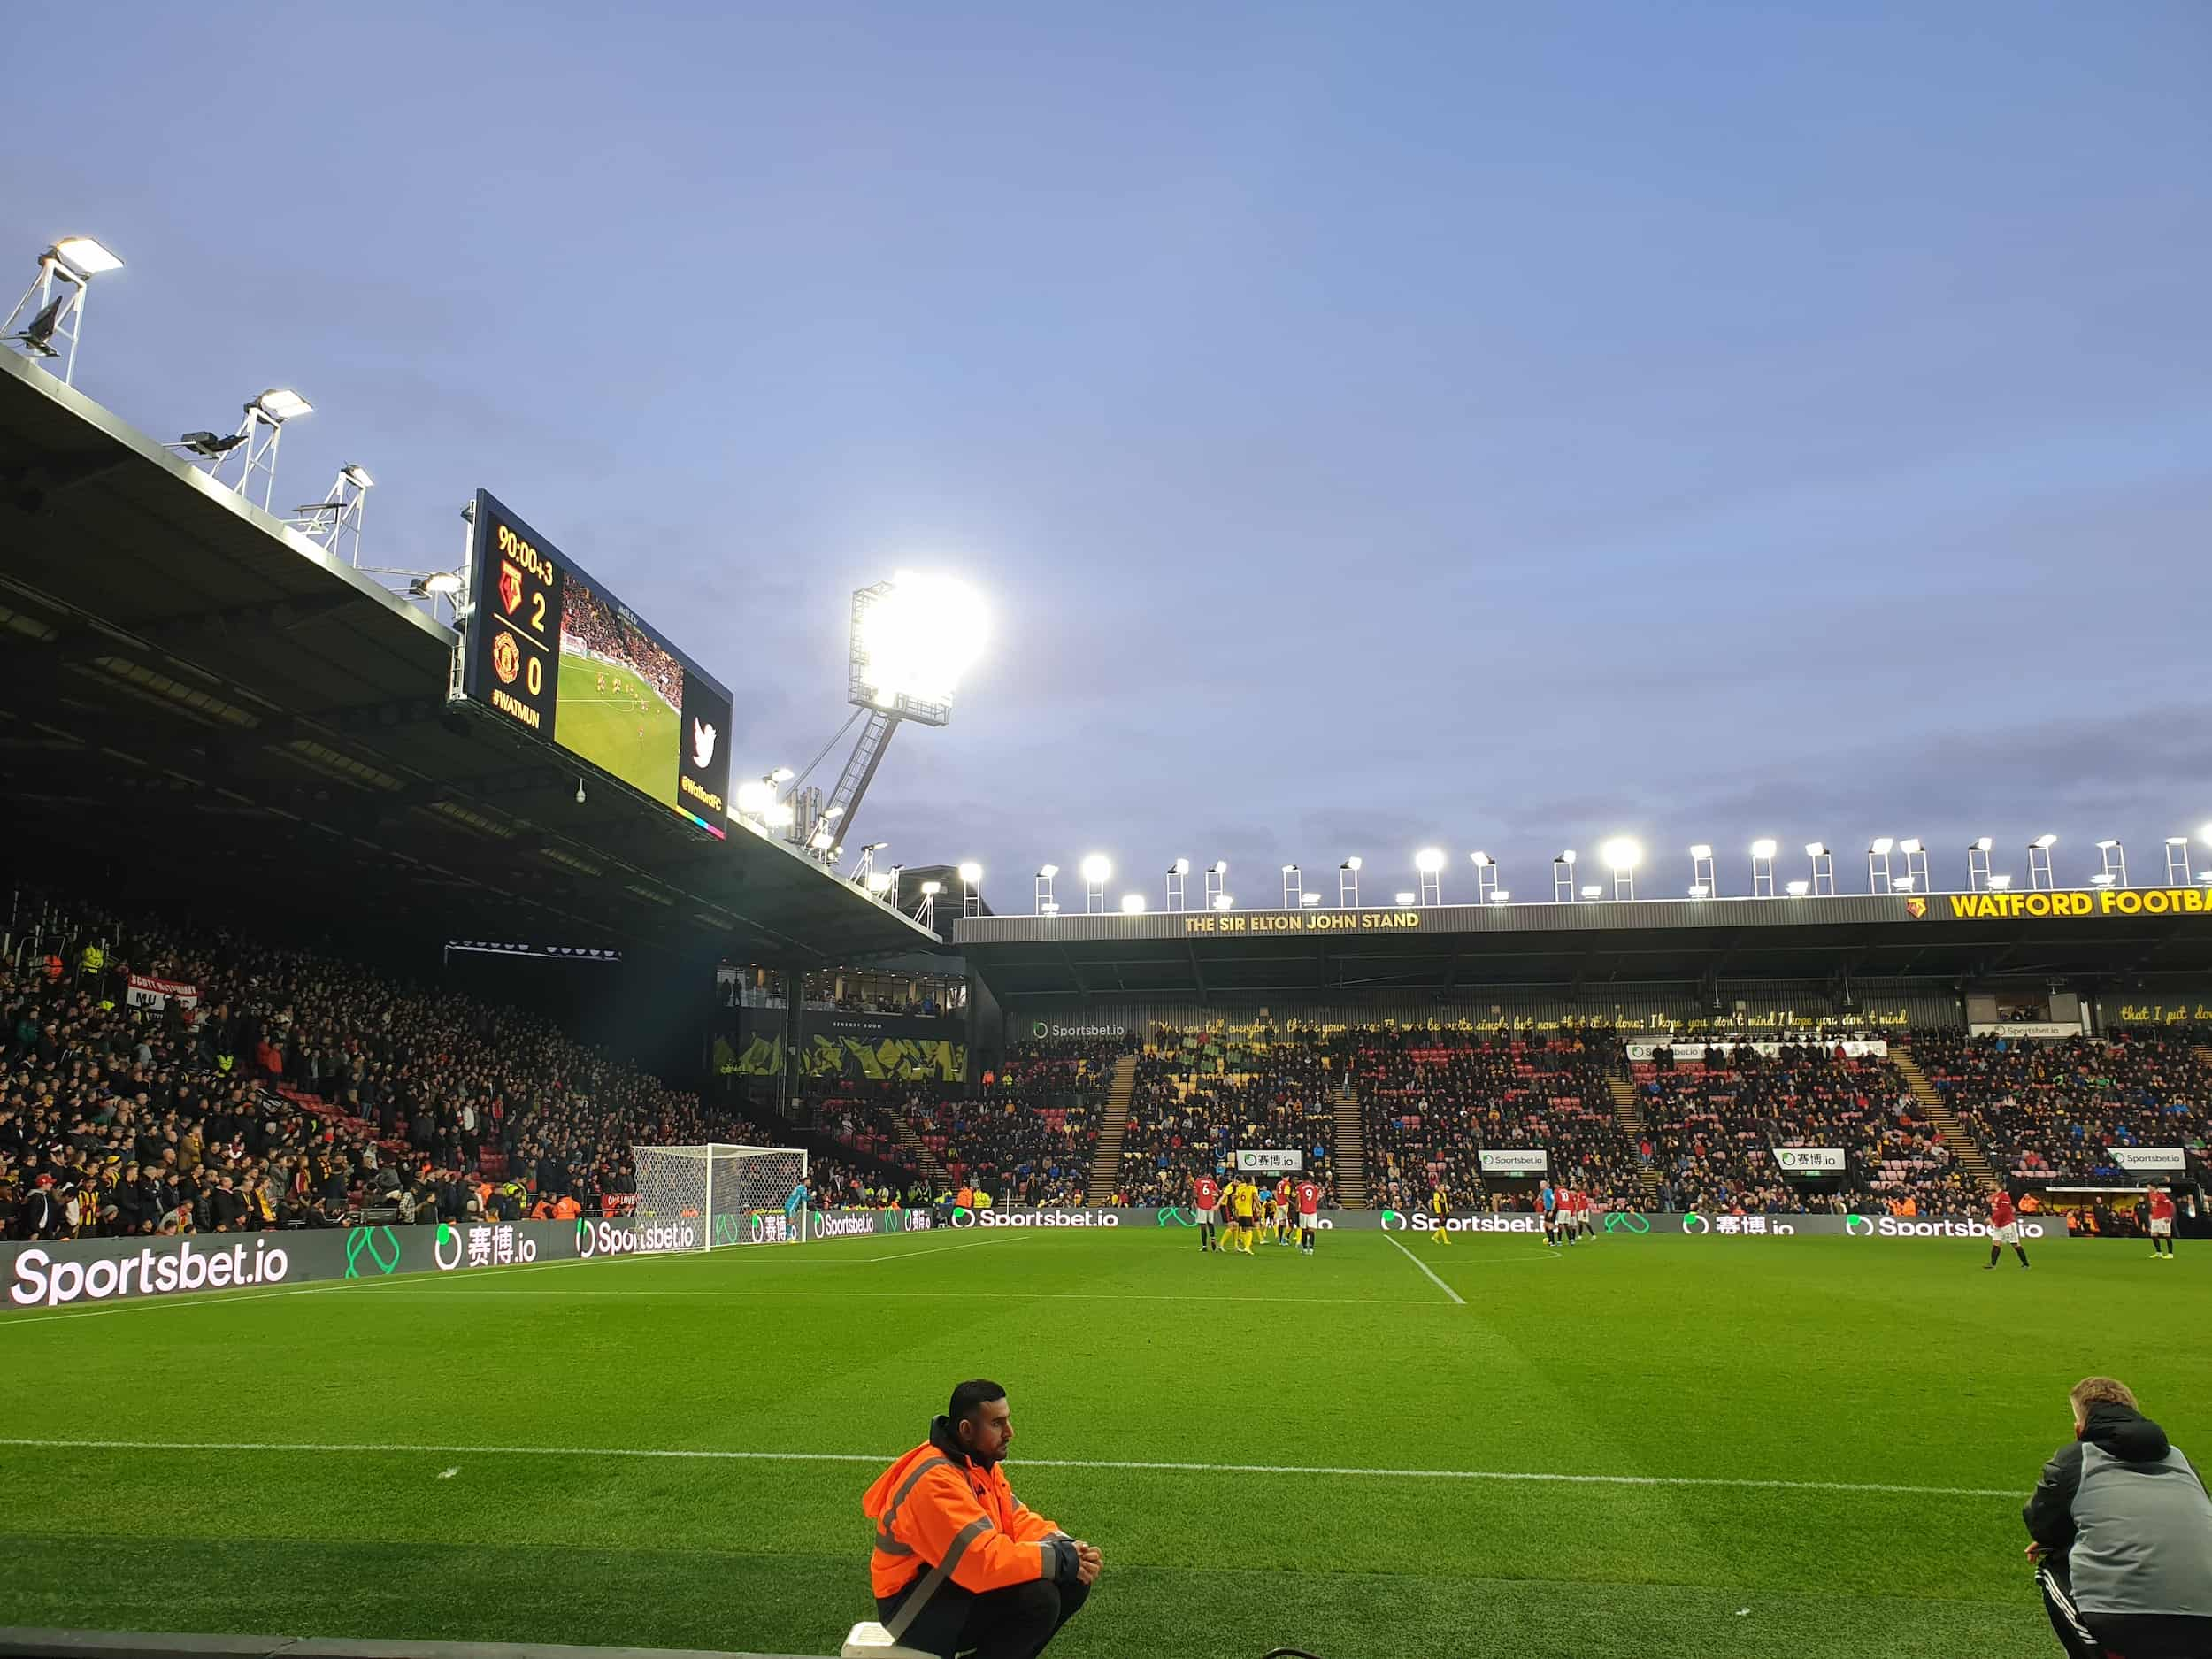 Premier League Fodbold i London: Watford - Manchester United december 2019